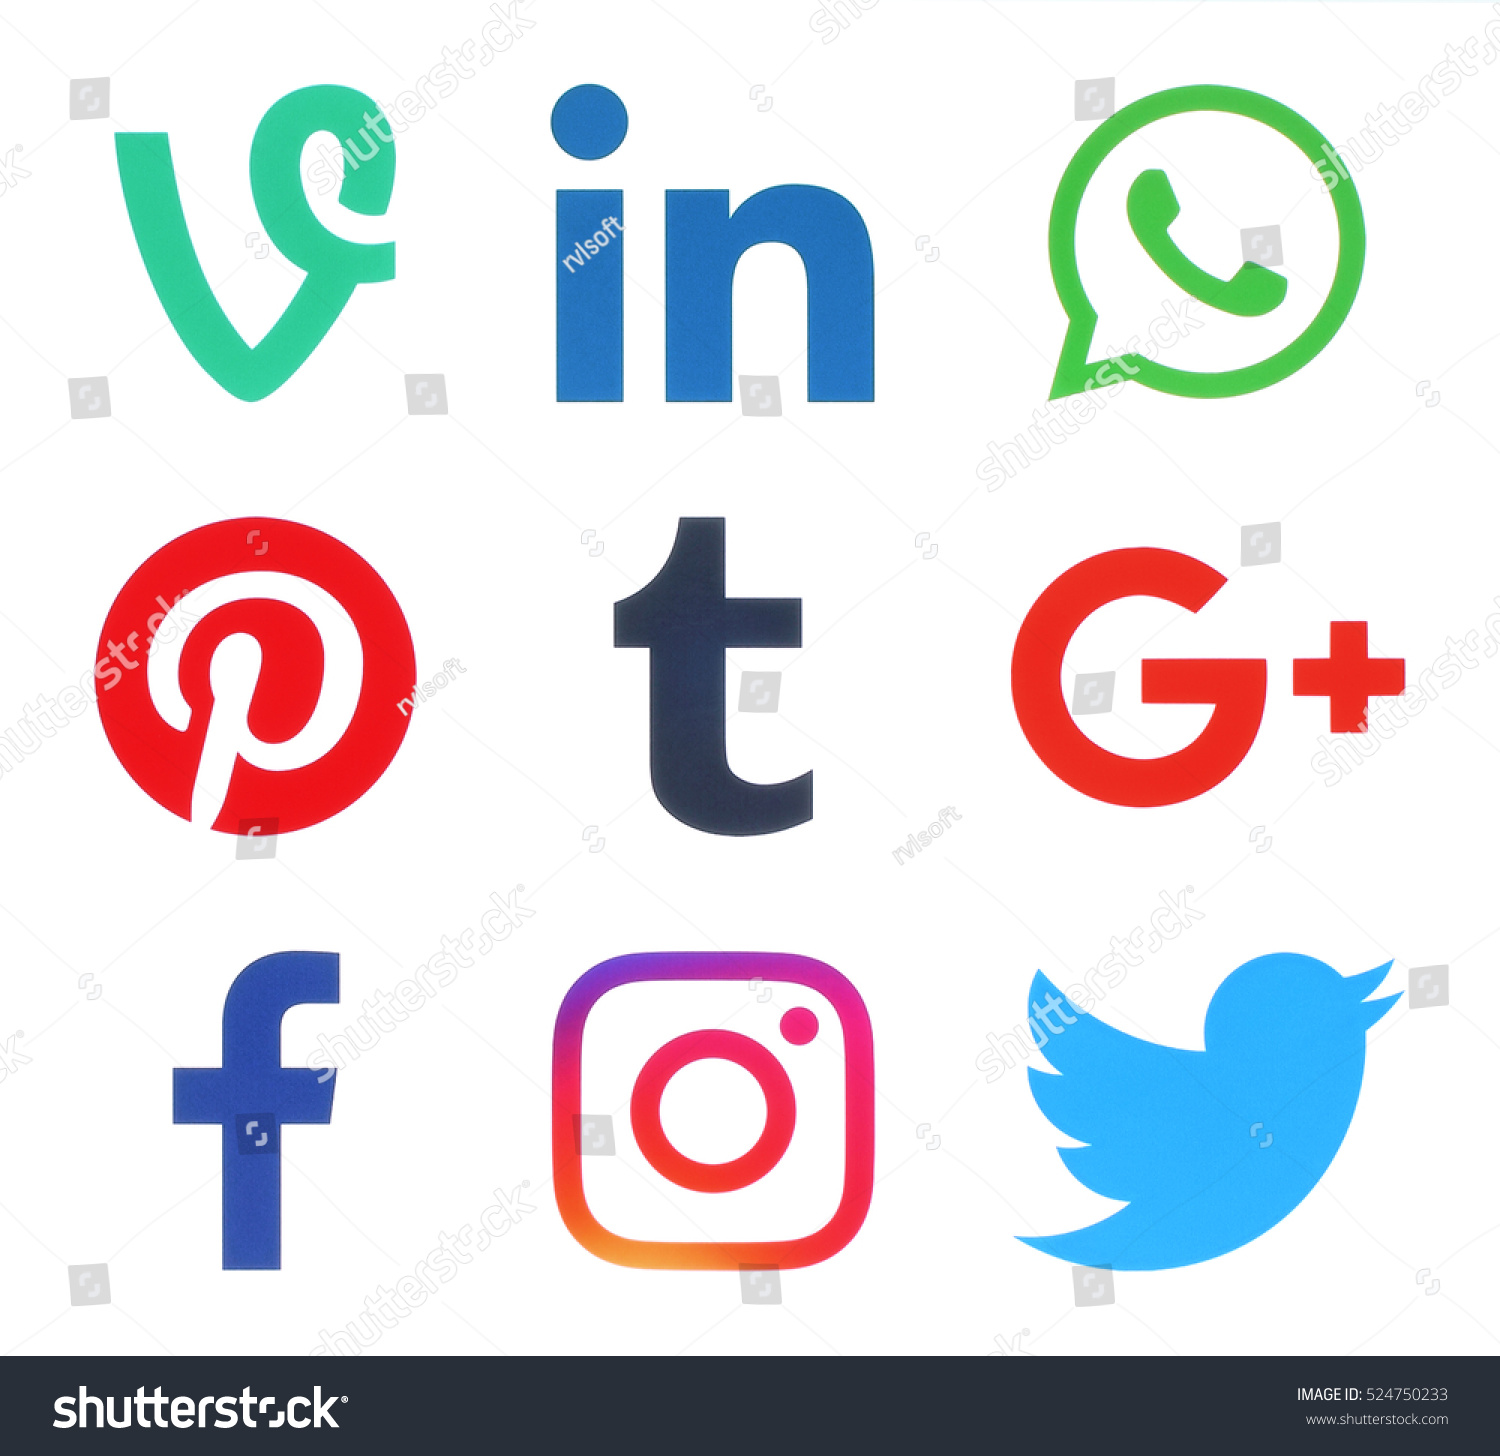 essay on social media (facebook and twitter) For my social media assignment social media reflective essay the major thing that makes me enjoy twitter more than facebook is, just because you follow me doesn't mean there's an obligation to follow you.